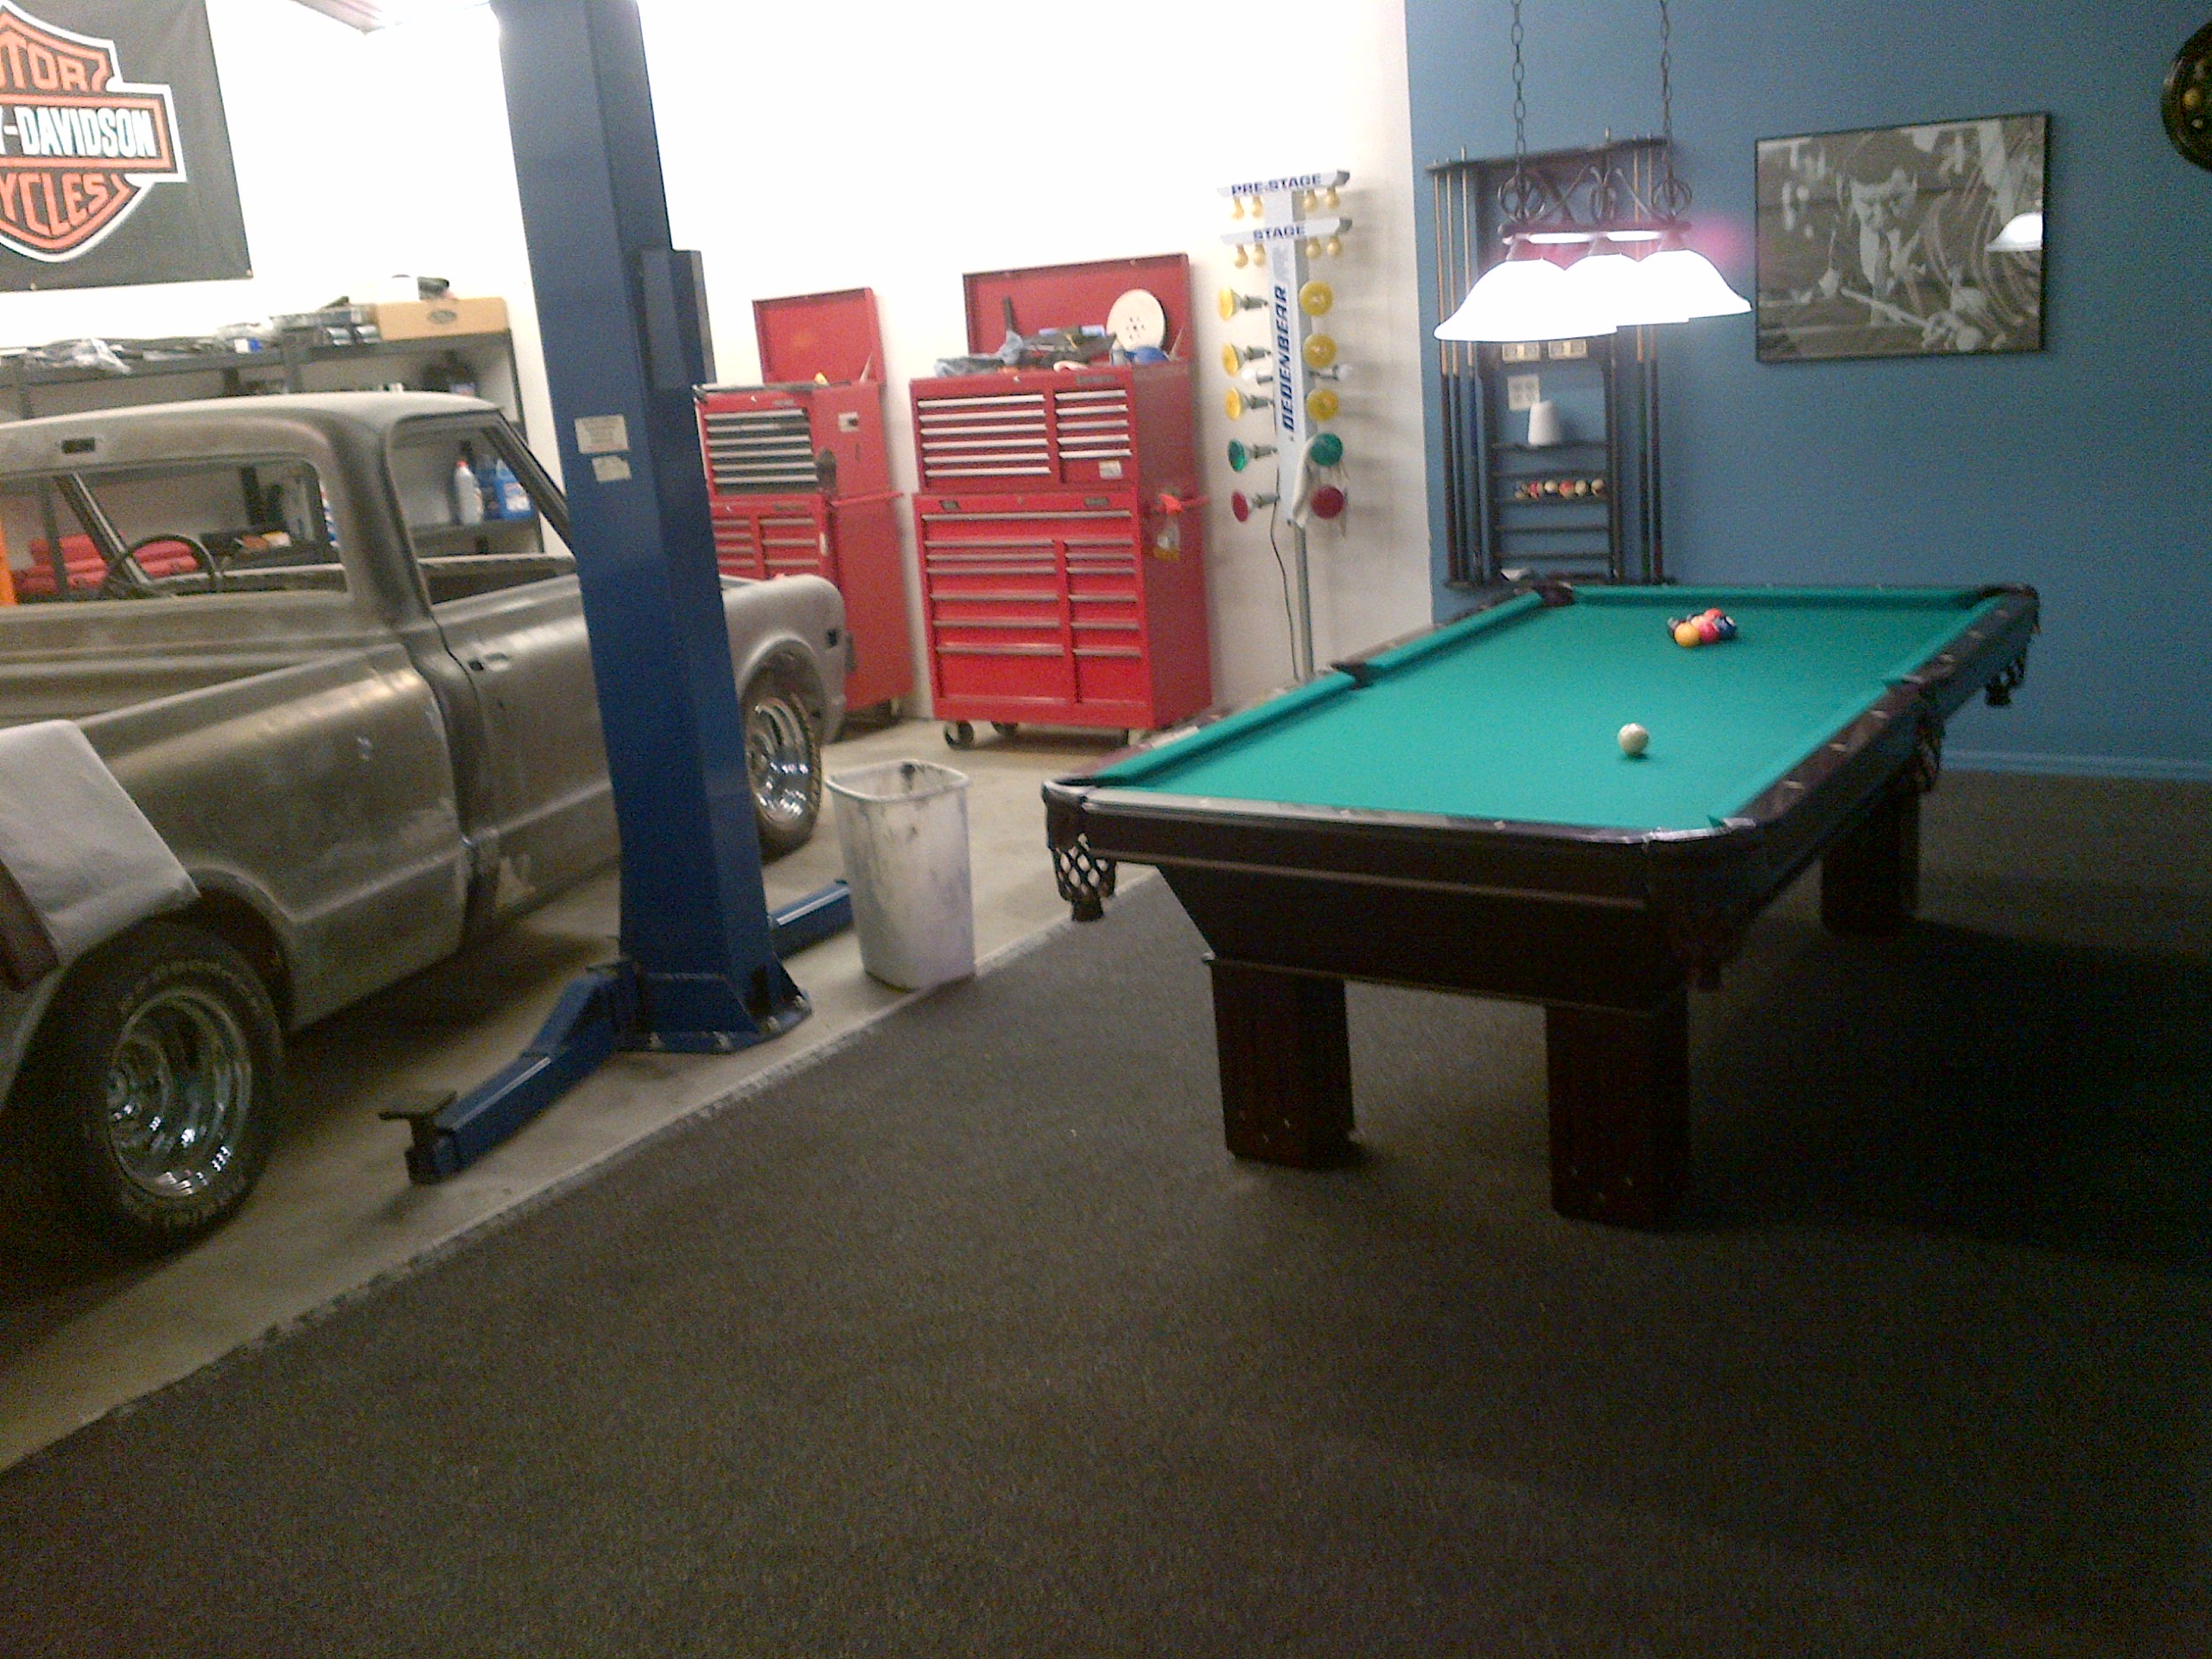 Assembly Of An 8u0027, Slate Pool Table In The Perfect Man Cave In Arvada, CO.